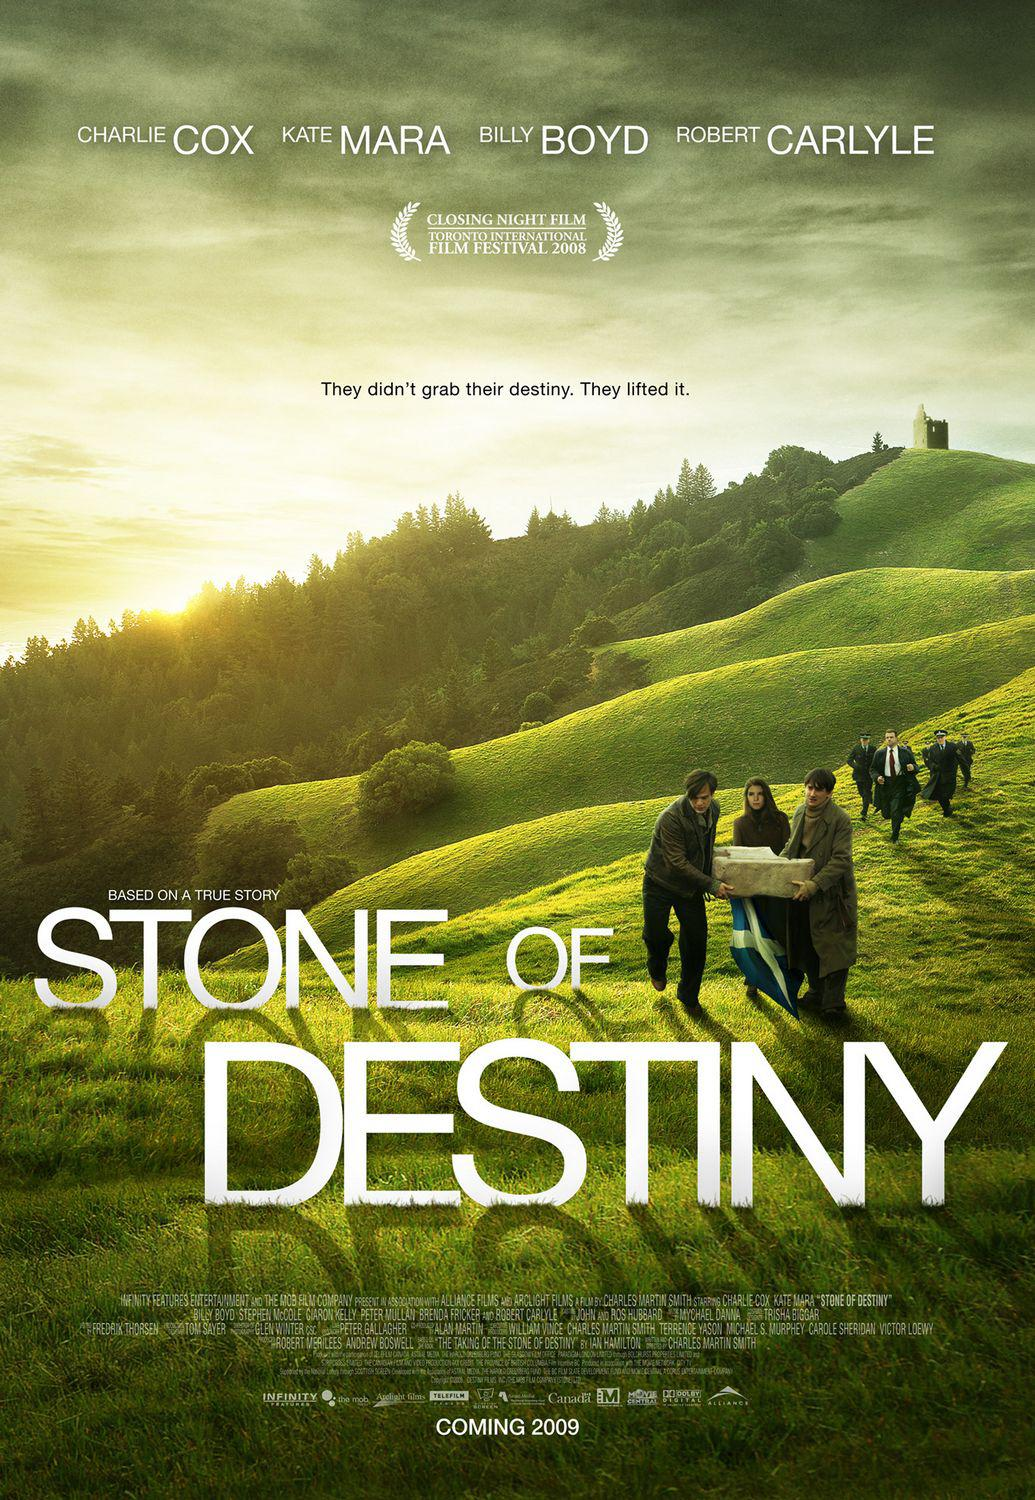 Stone of Destiny - They didn't grab their Destiny. They lifted it - Charlie Cox - Kate Mara - Billy Boyd - Robert Carlyle - film poster